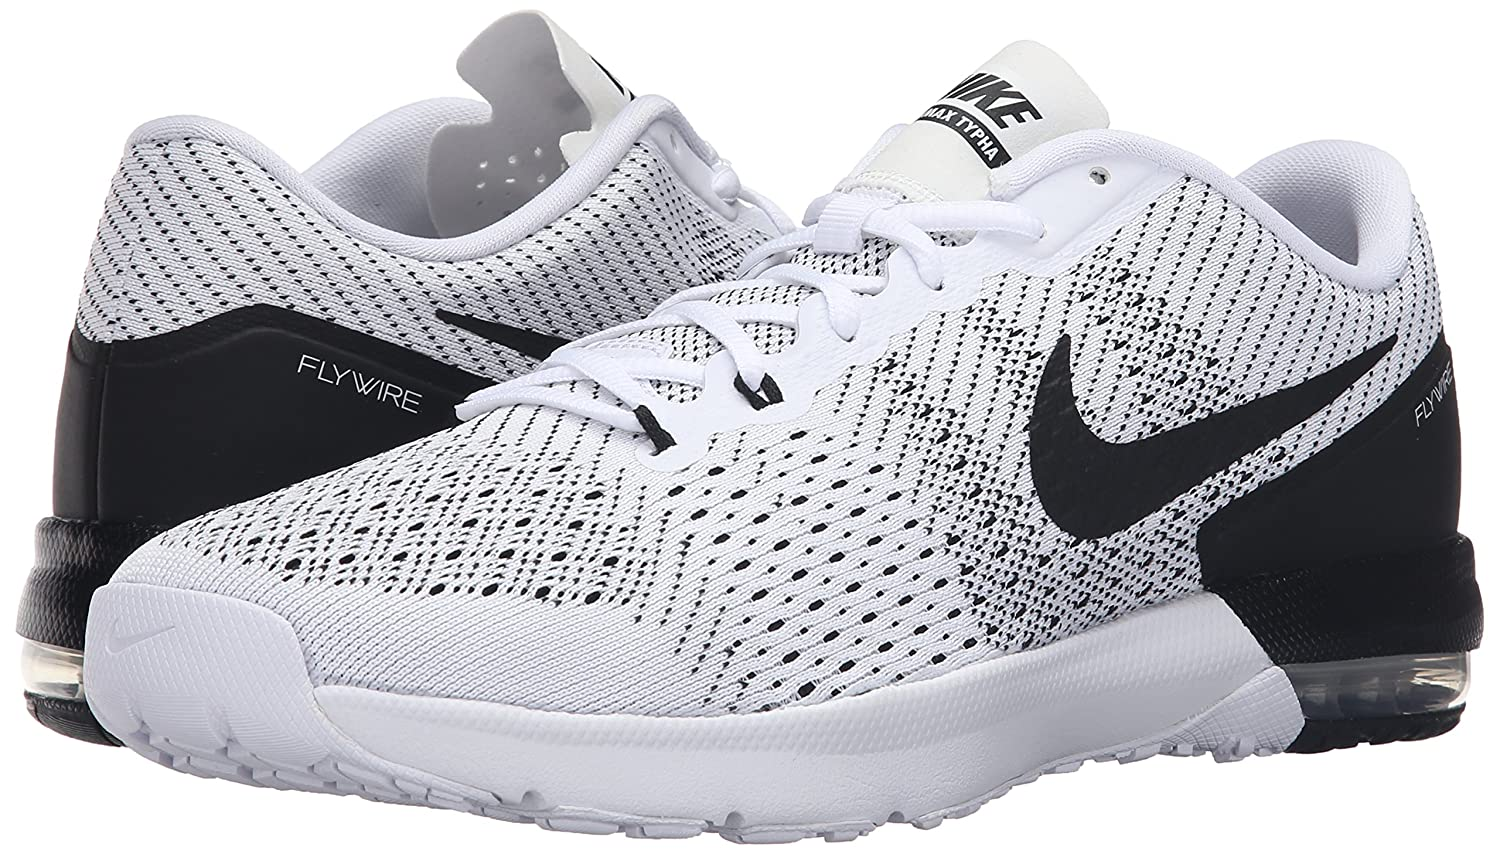 new product 5615f 10562 Nike Herren Air Max Typha Low-Top: Amazon.de: Schuhe & Handtaschen